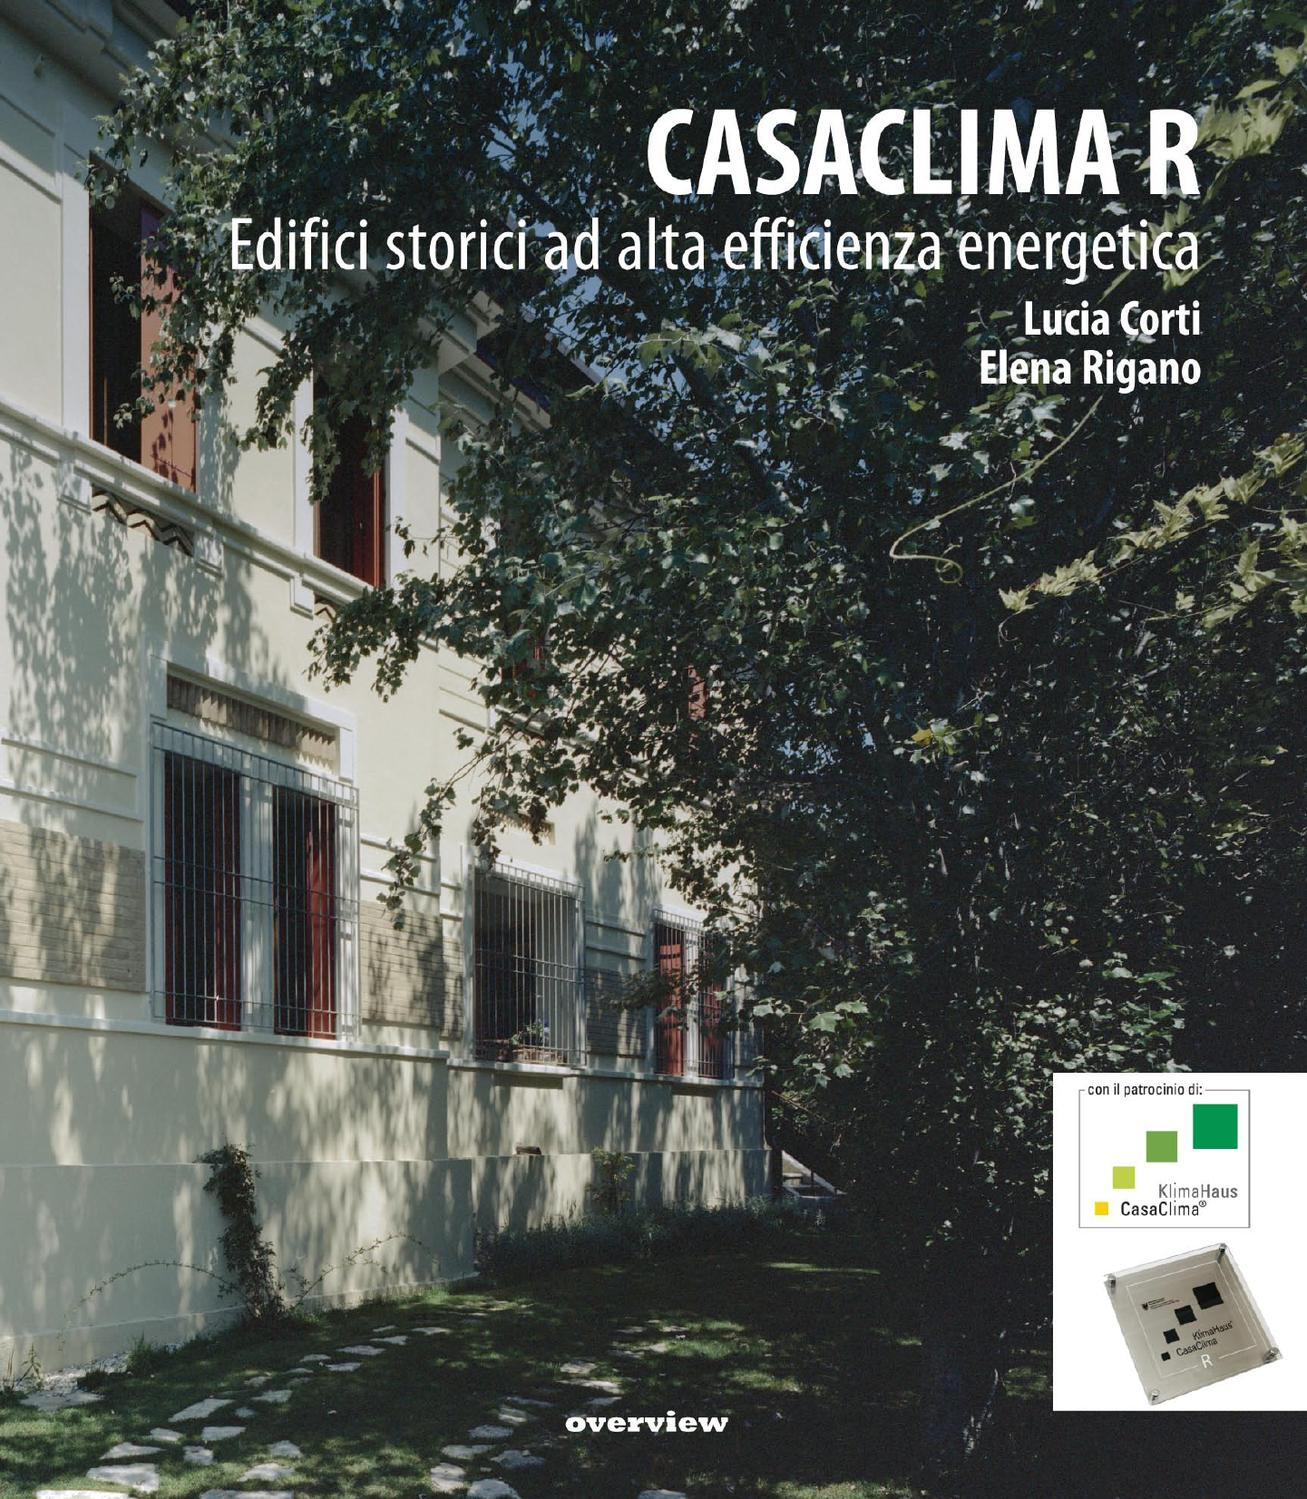 Issuu casaclima r edifici storici ad alta efficienza for Modelli di casa ad alta efficienza energetica